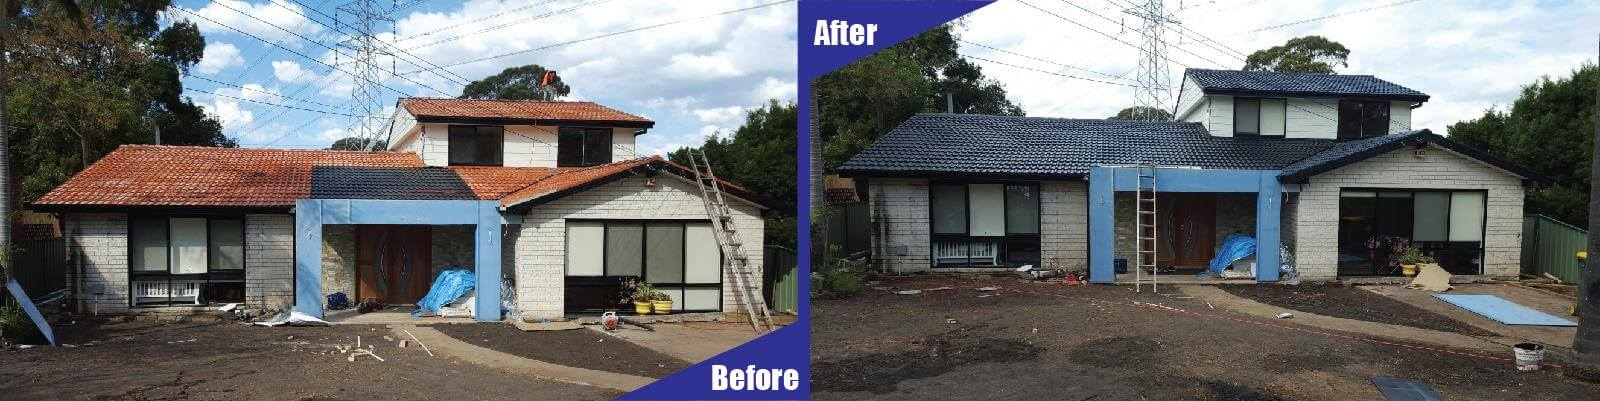 Roof Cleaning Roof Painting Amp Roof Restoration Sydney Wide